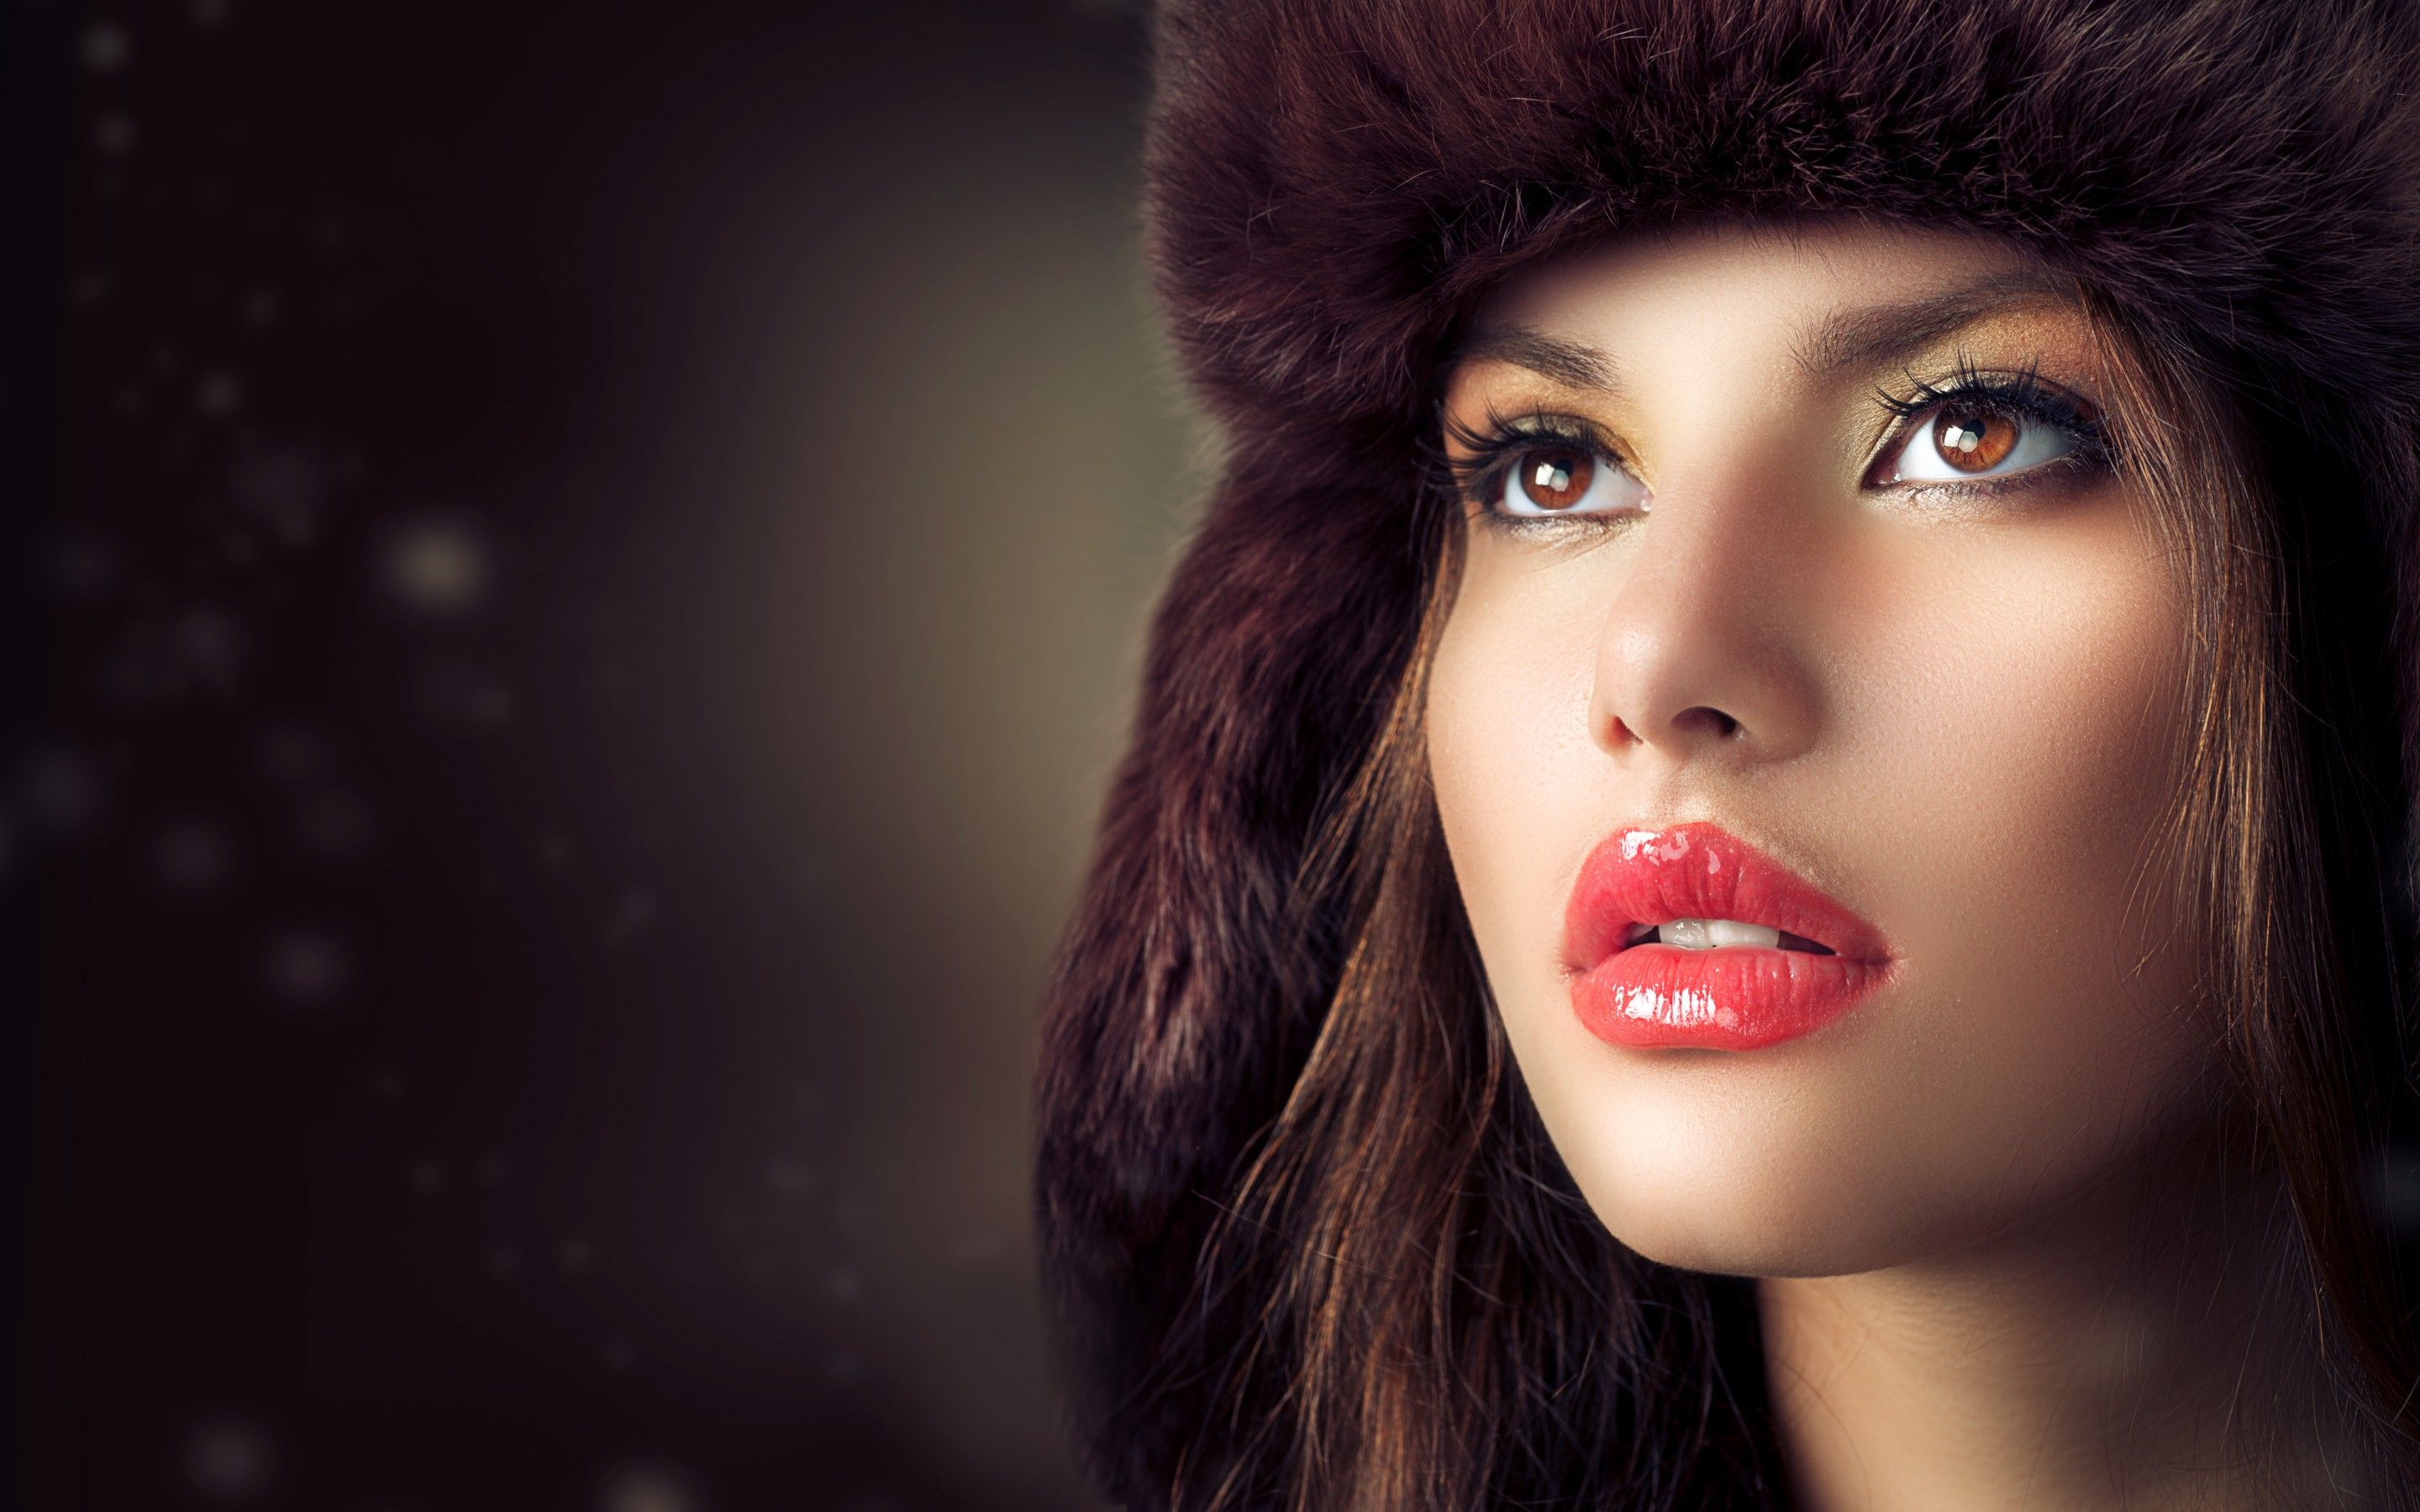 Beauty Fashion Model Girl With Hat HD Wallpaper